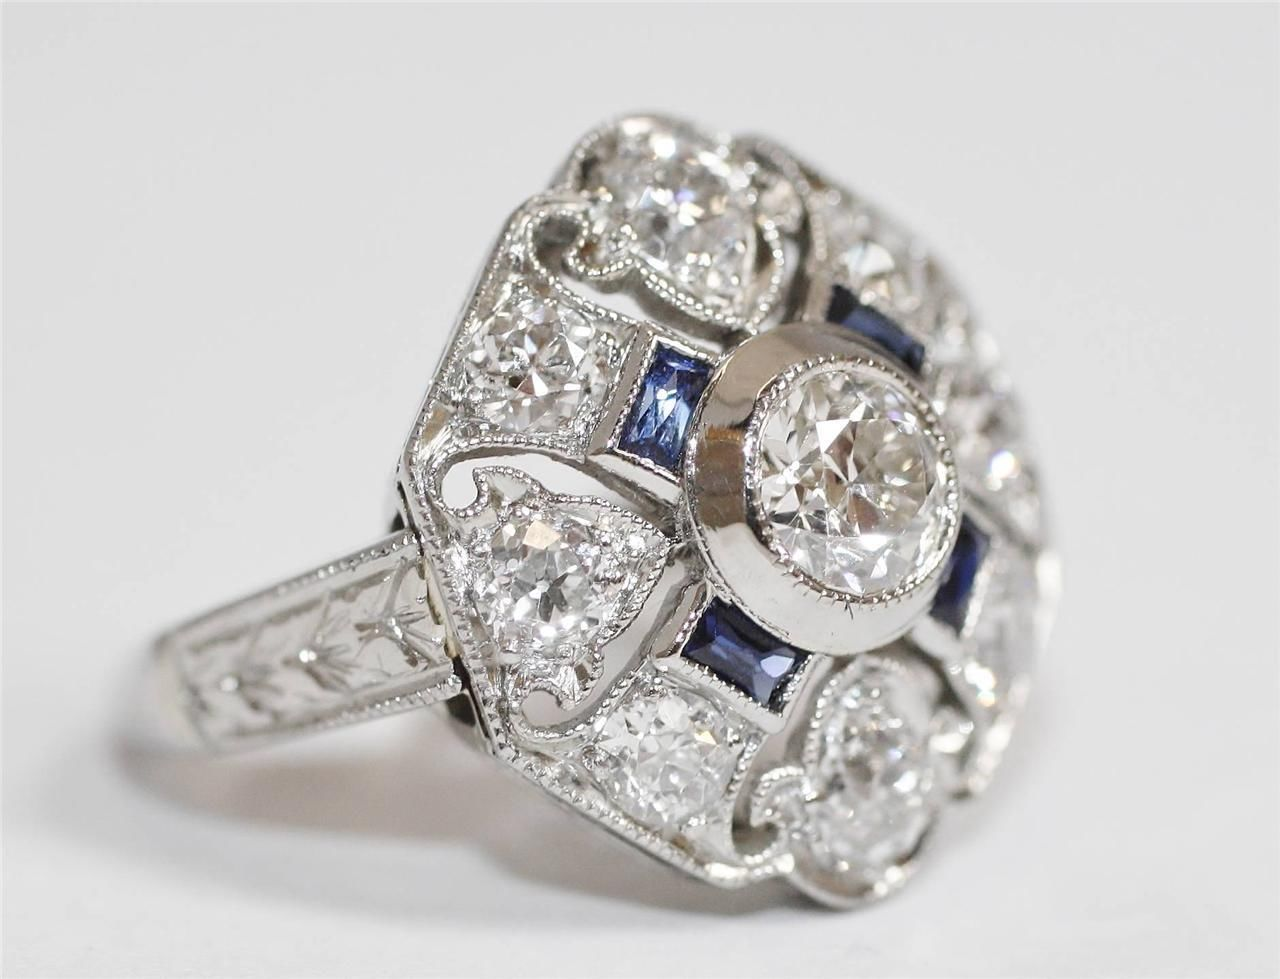 Who Buys Diamond Jewelry In Omaha  Omaha Diamond Buyer. Wedding Flowers Memphis Tn. Winter Wedding Pant Suits. Classic Chic Wedding Invitations. Wedding Rings Male. Cheap Wedding Dresses Dfw. Wedding Surprise Ideas For The Bride. Wedding Stationery Place Cards. Wedding Veils Hen Party